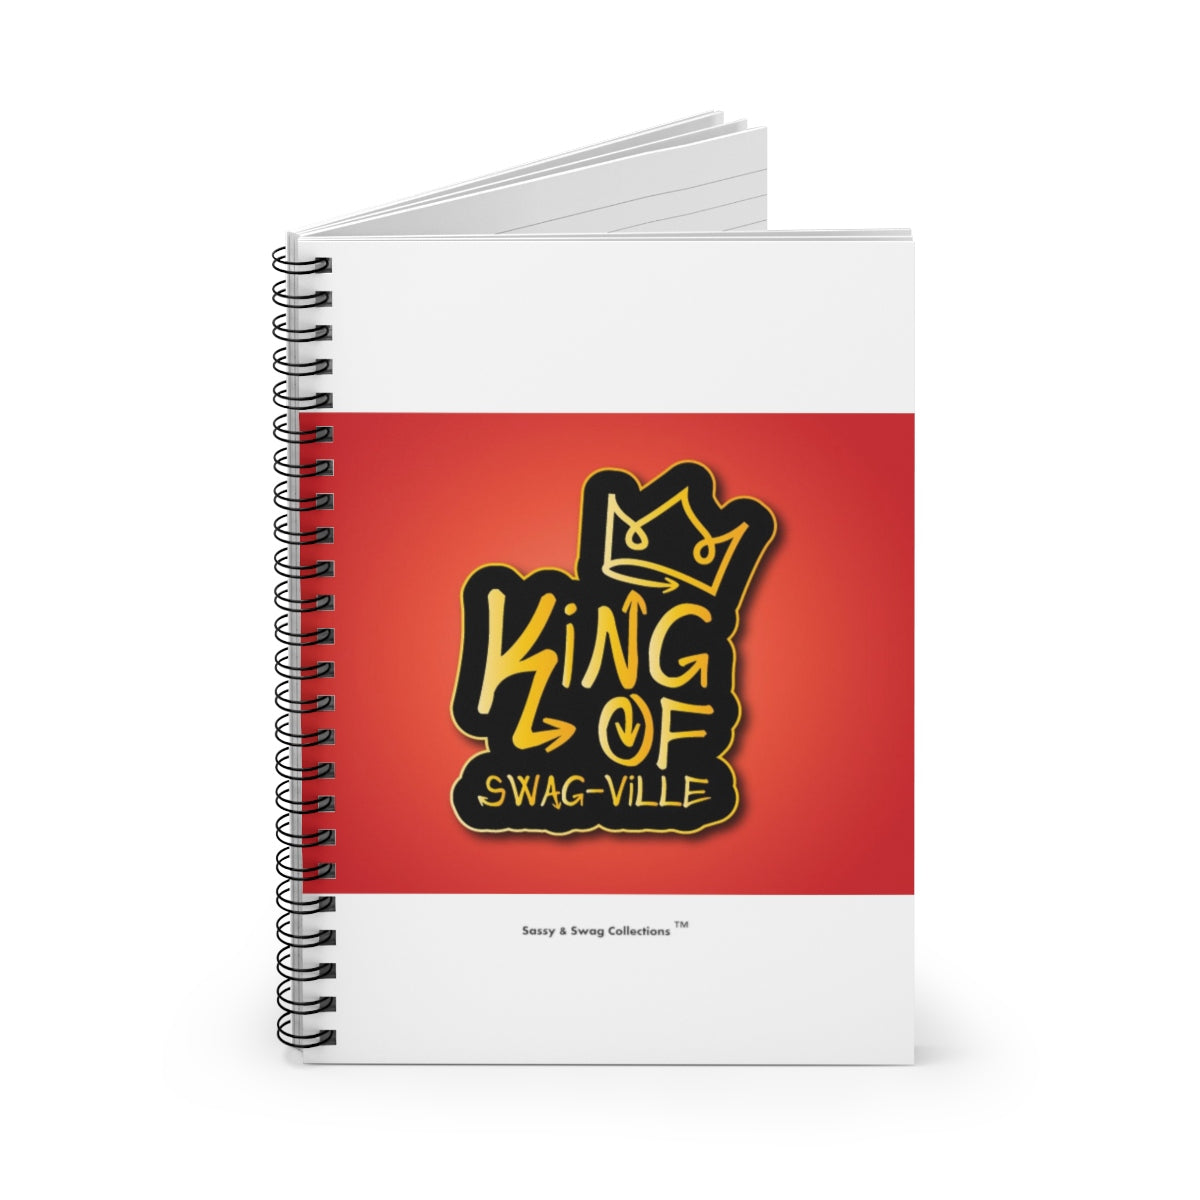 Sassy & Swag Collections - King of Swag-ville Spiral Notebook - Ruled Line